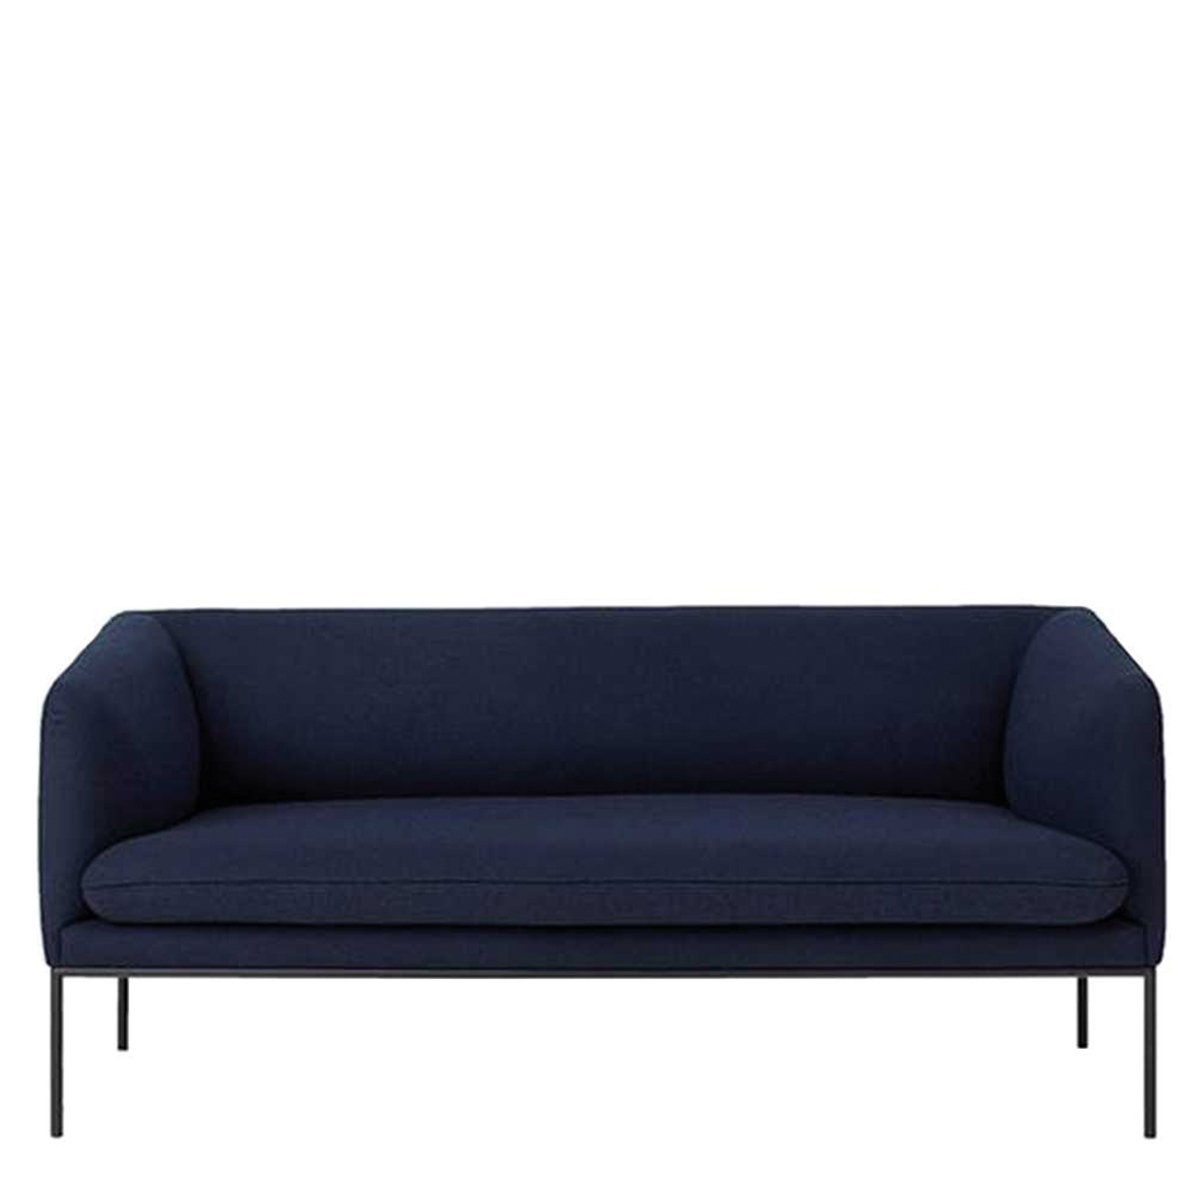 Ferm Living Turn Sofa 2-zits Bank Wolmix